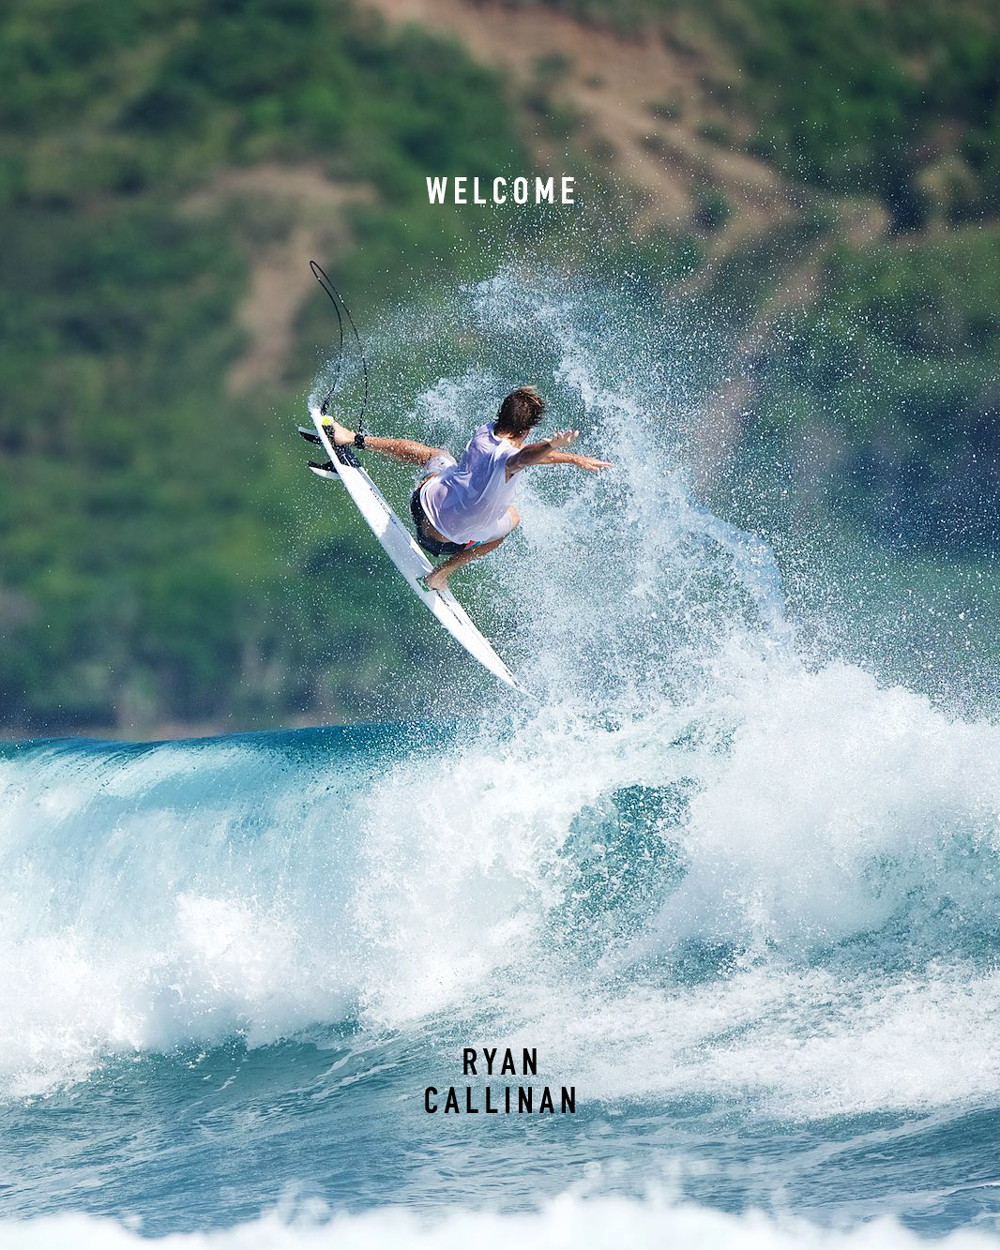 ocean-earth-welcomes-ryan-callinan-header-tropic